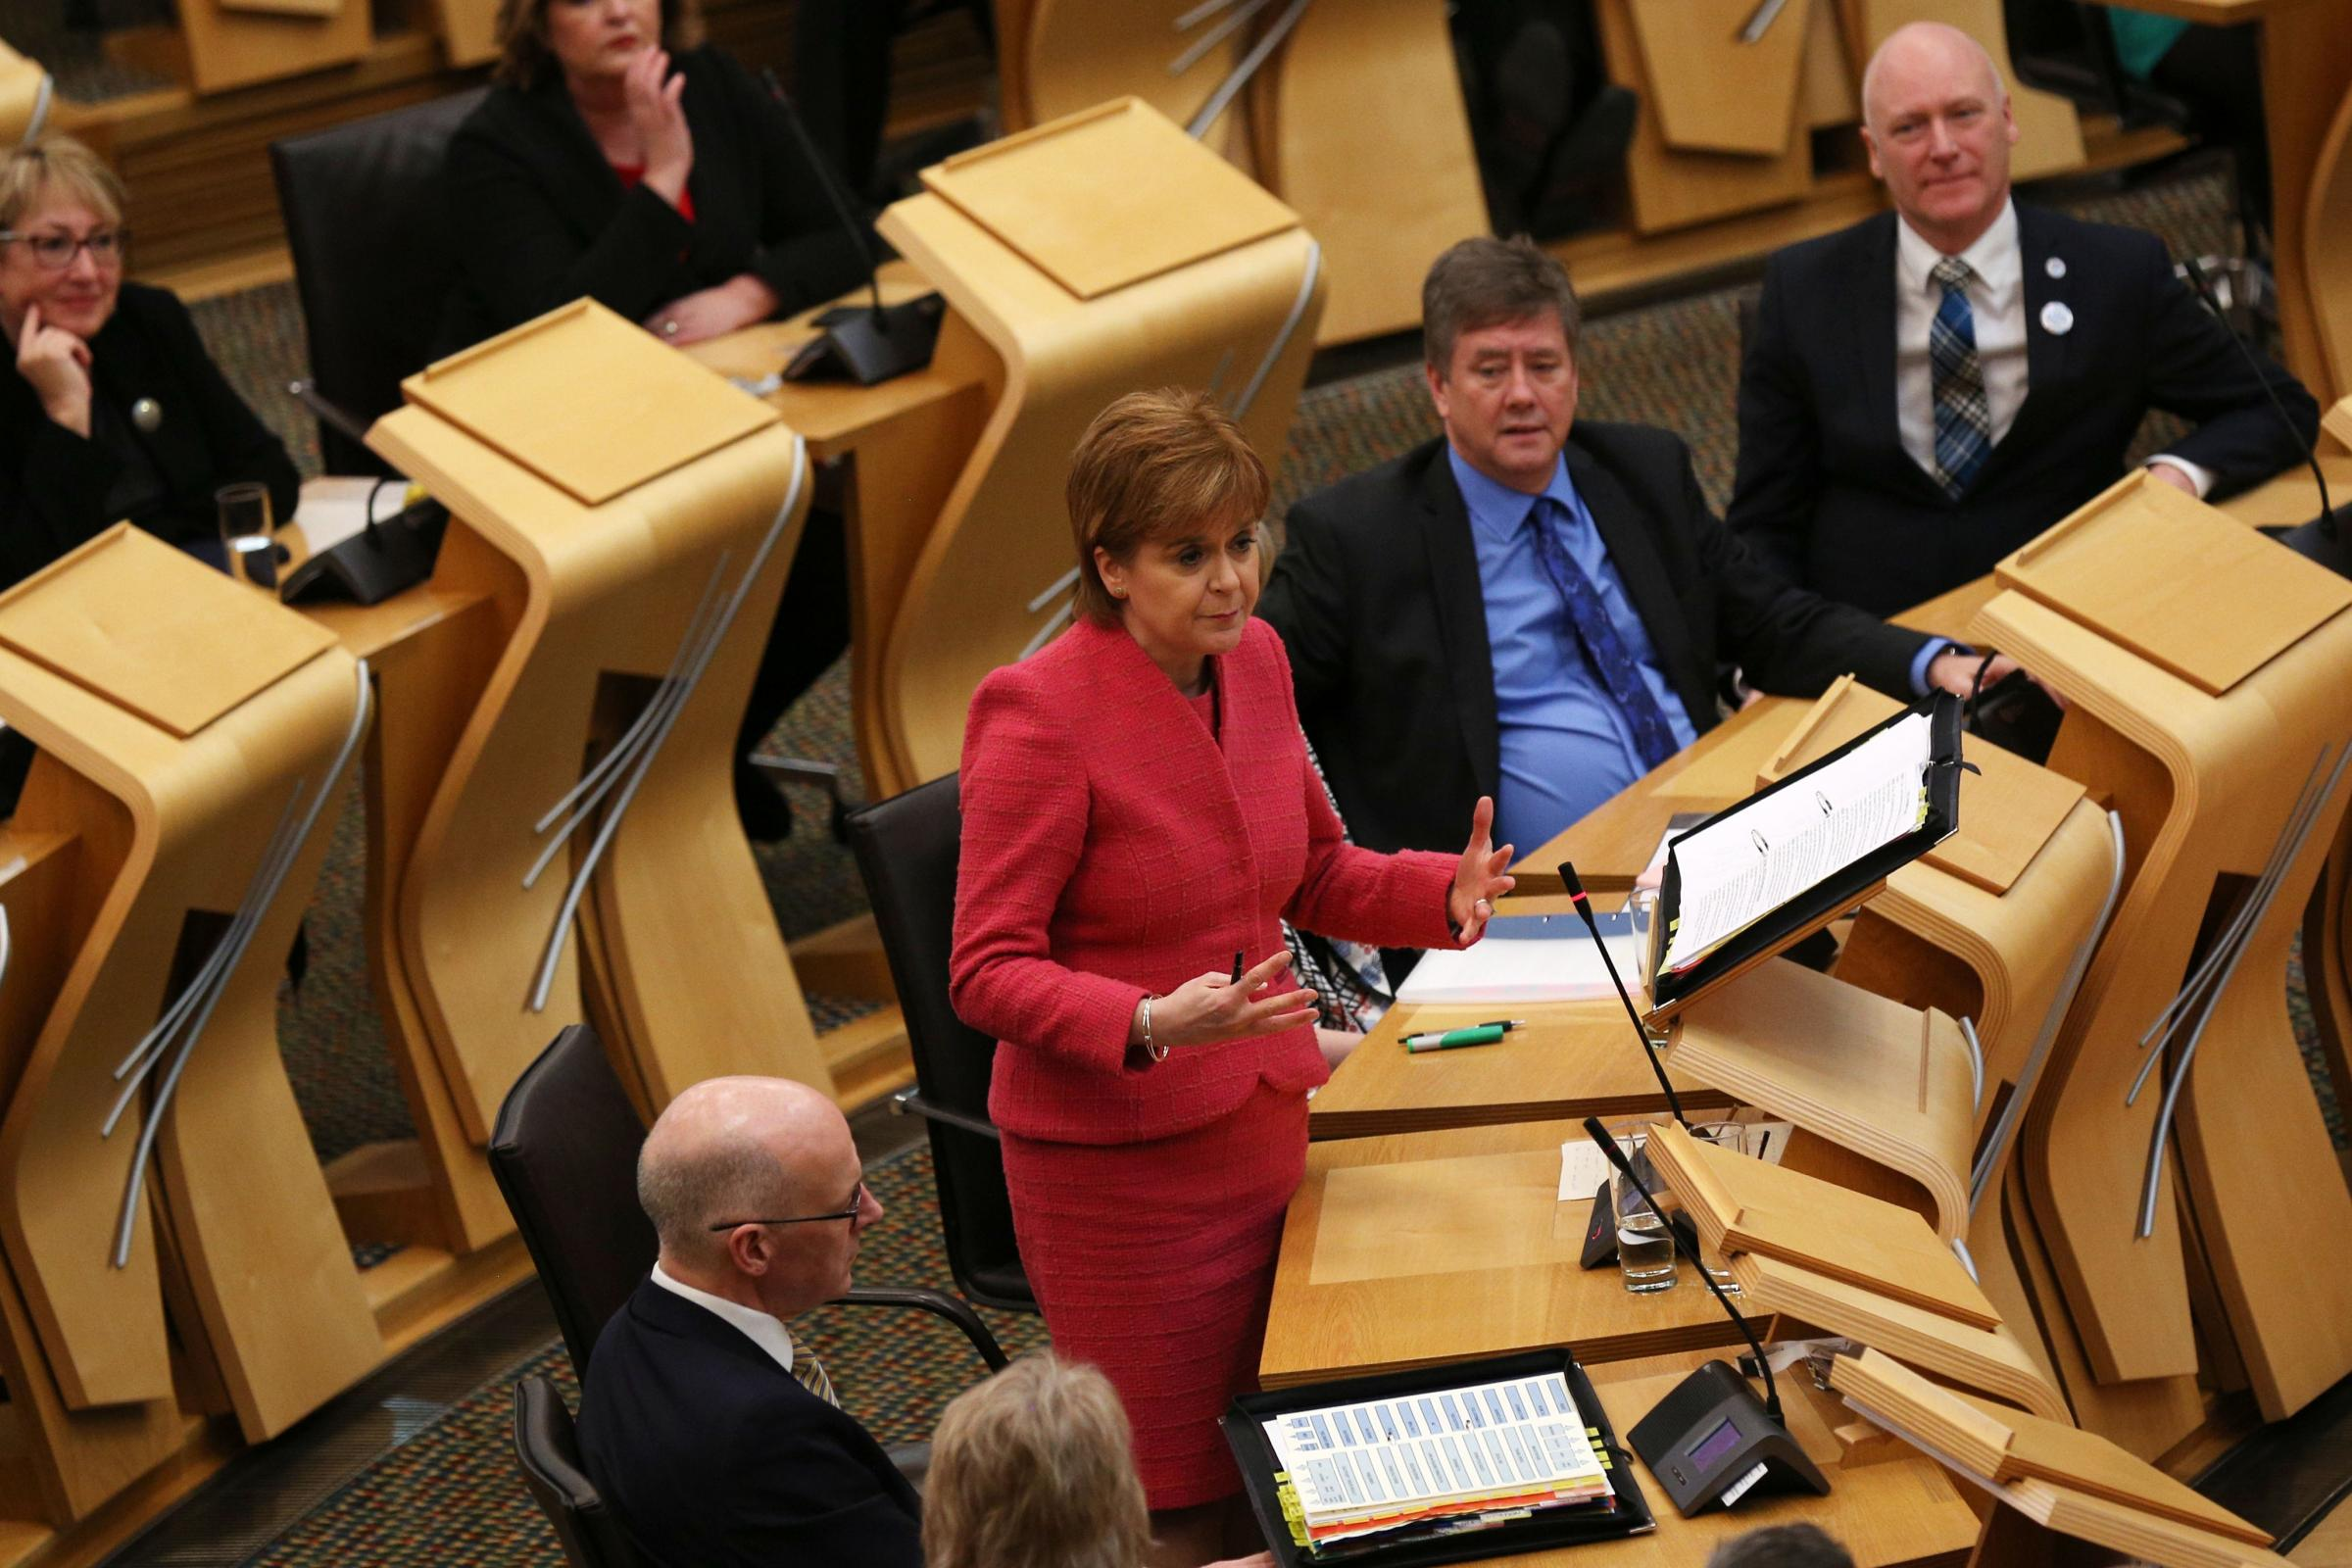 First Minister Nicola Sturgeon in the debating chamber during FMQs